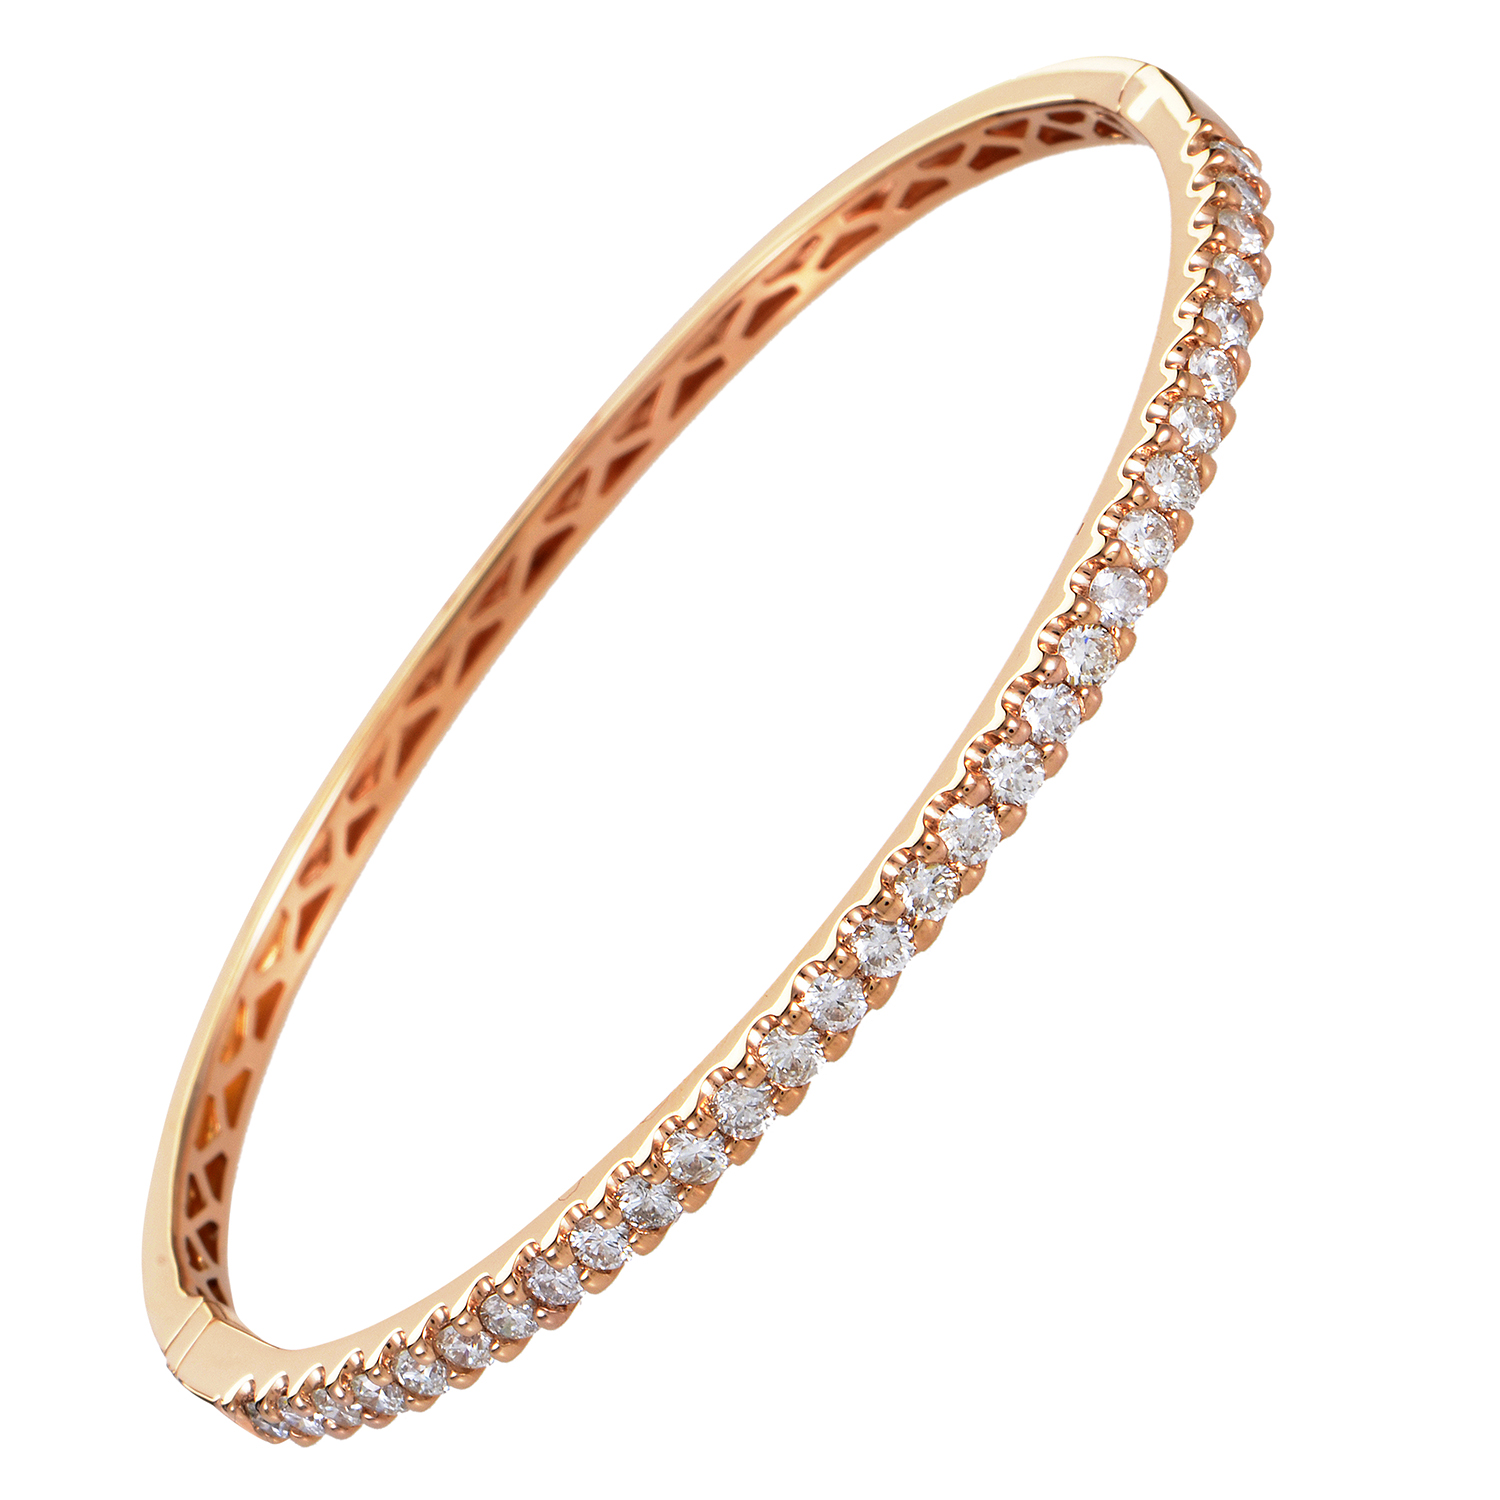 Women's 18K Rose Gold Diamond Bangle Bracelet ALB-10975R